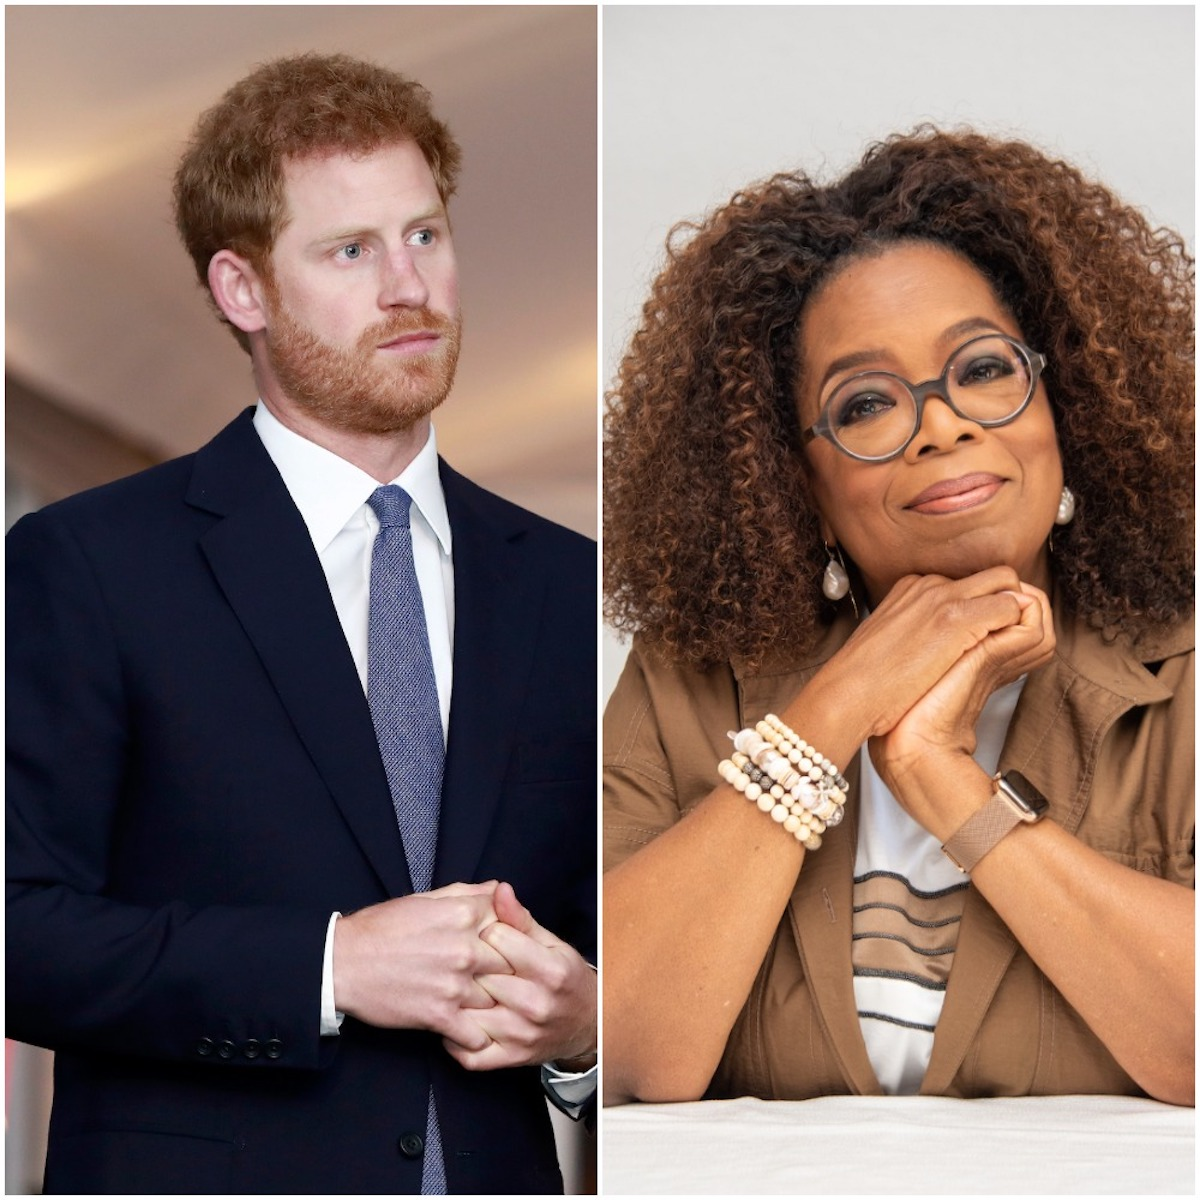 (L-R): Prince Harry clasps his hands together at Landmine Free World 2025 Reception in 2017; Oprah Winfrey puts her hands under her chin at 'David Makes Man' press conference in 2019